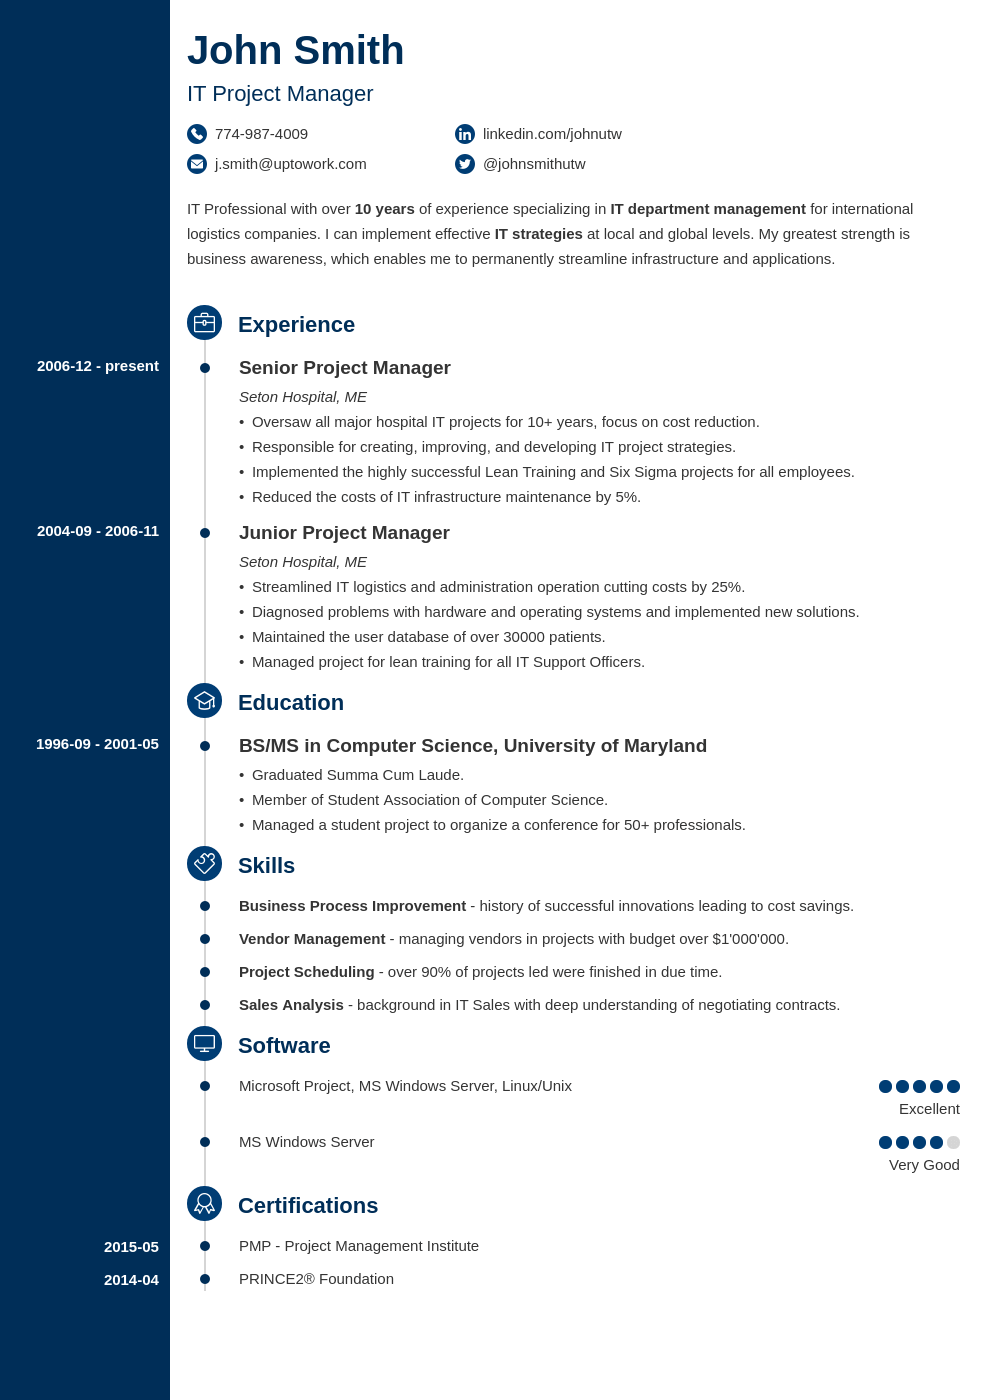 20 CV Templates: Download a Professional Curriculum Vitae in ...